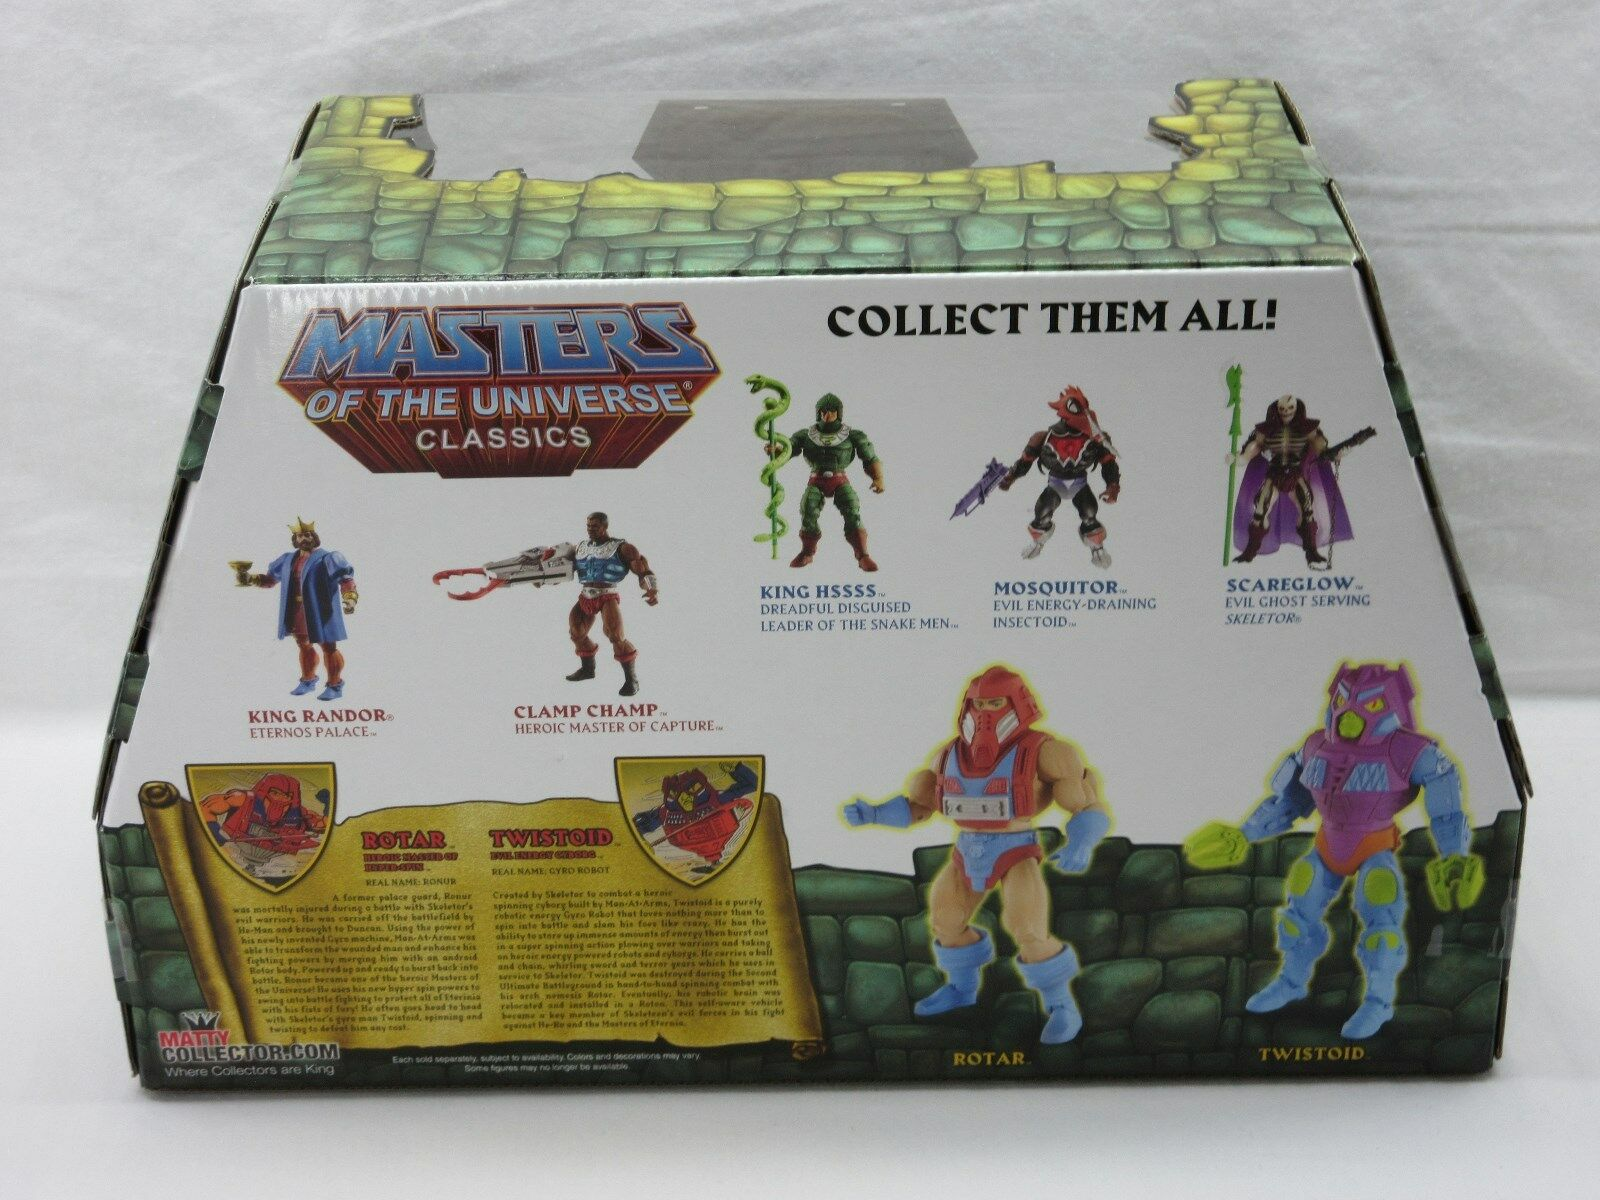 MOTU,MOTUC,ROTAR MOTU,MOTUC,ROTAR MOTU,MOTUC,ROTAR & TWISTOID,MASTERS OF THE UNIVERSE CLASSICS,MISB,SEALED,He-Man 950577